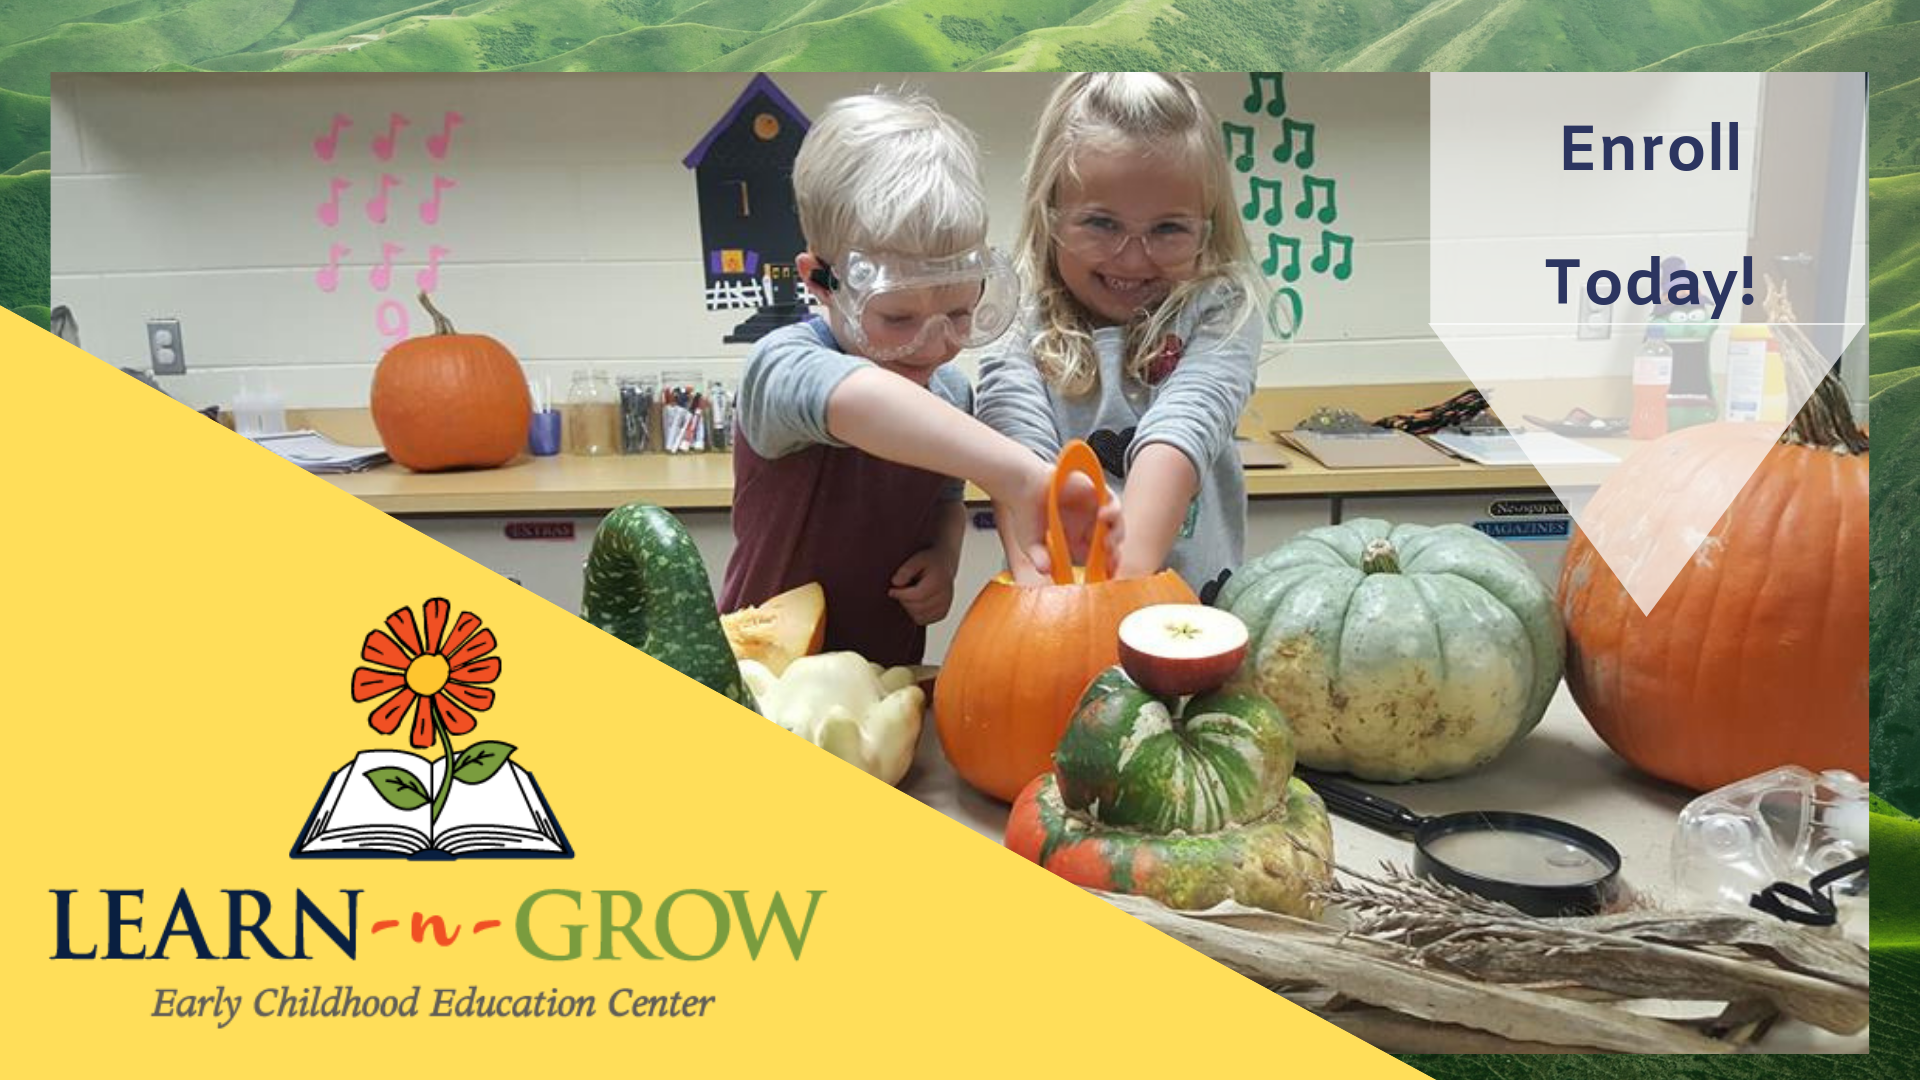 Two students digging in a pumpkin with learn n grow logo and flag with enrollment date.